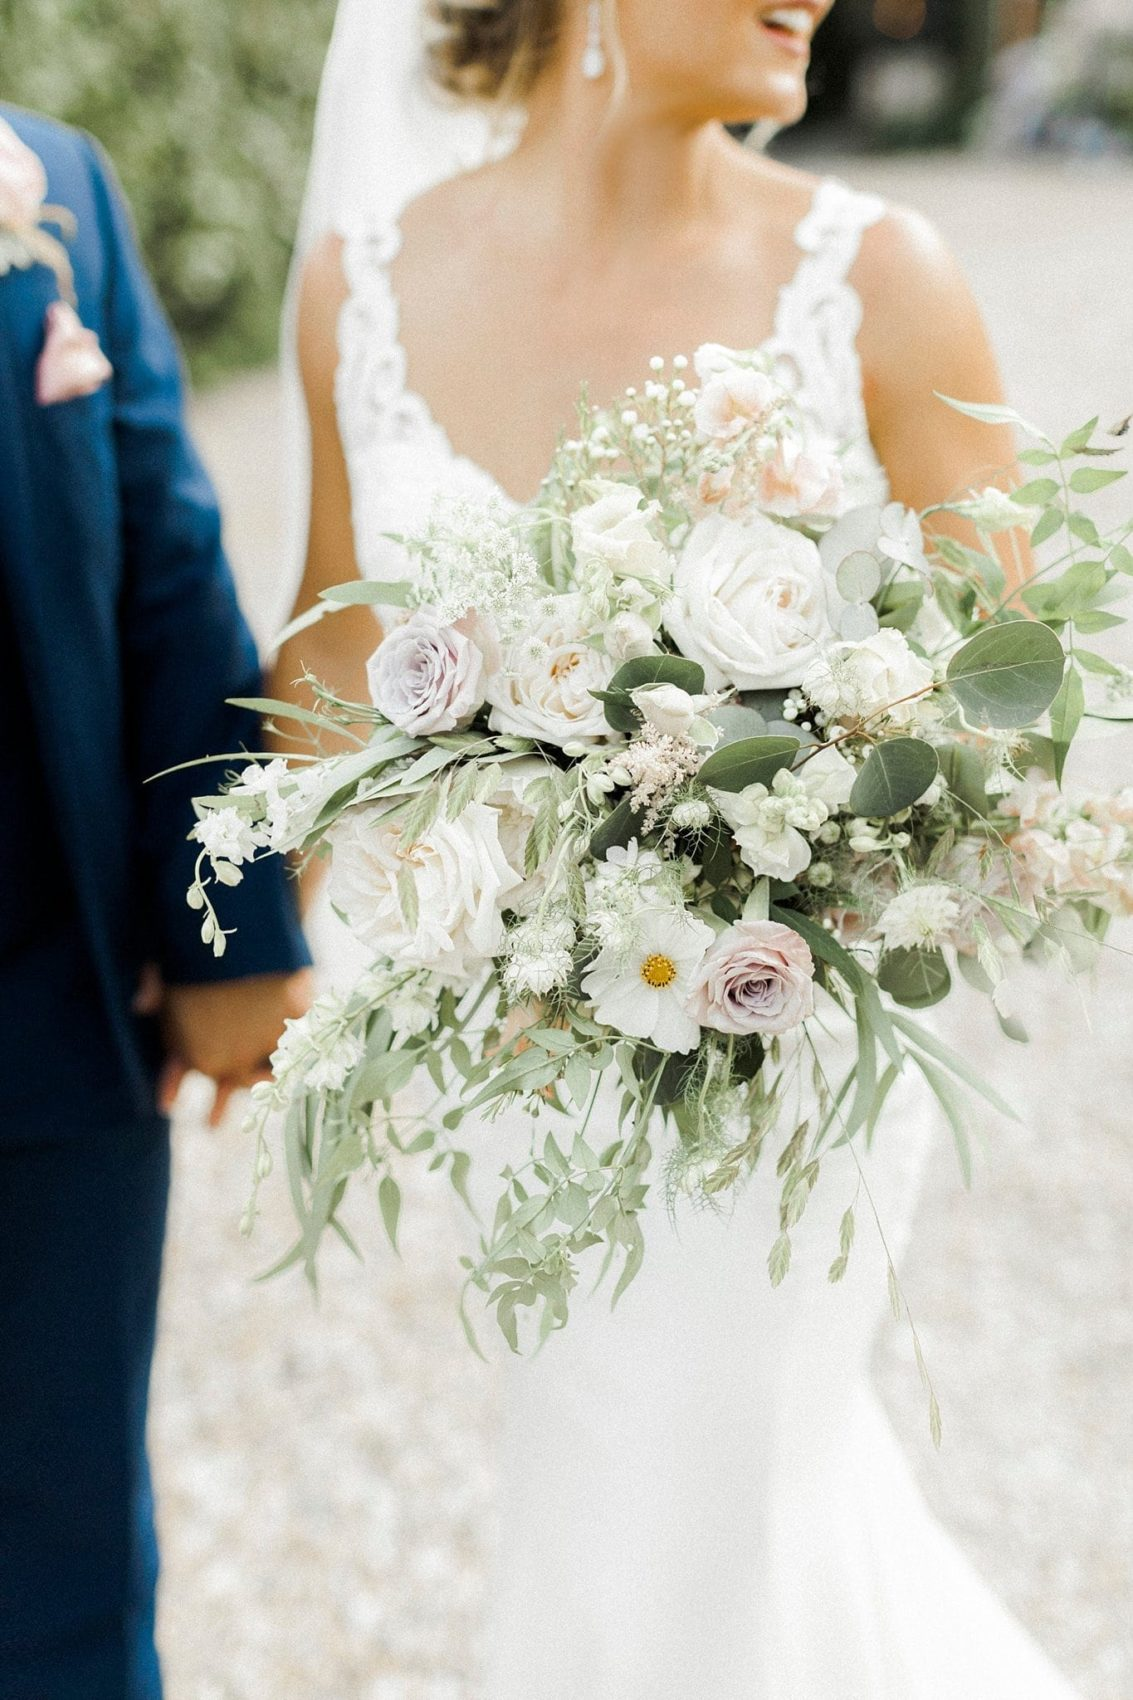 wild bouquet, flowers, wedding, bride & groom, dusky pink, ivory, foliage, stunning